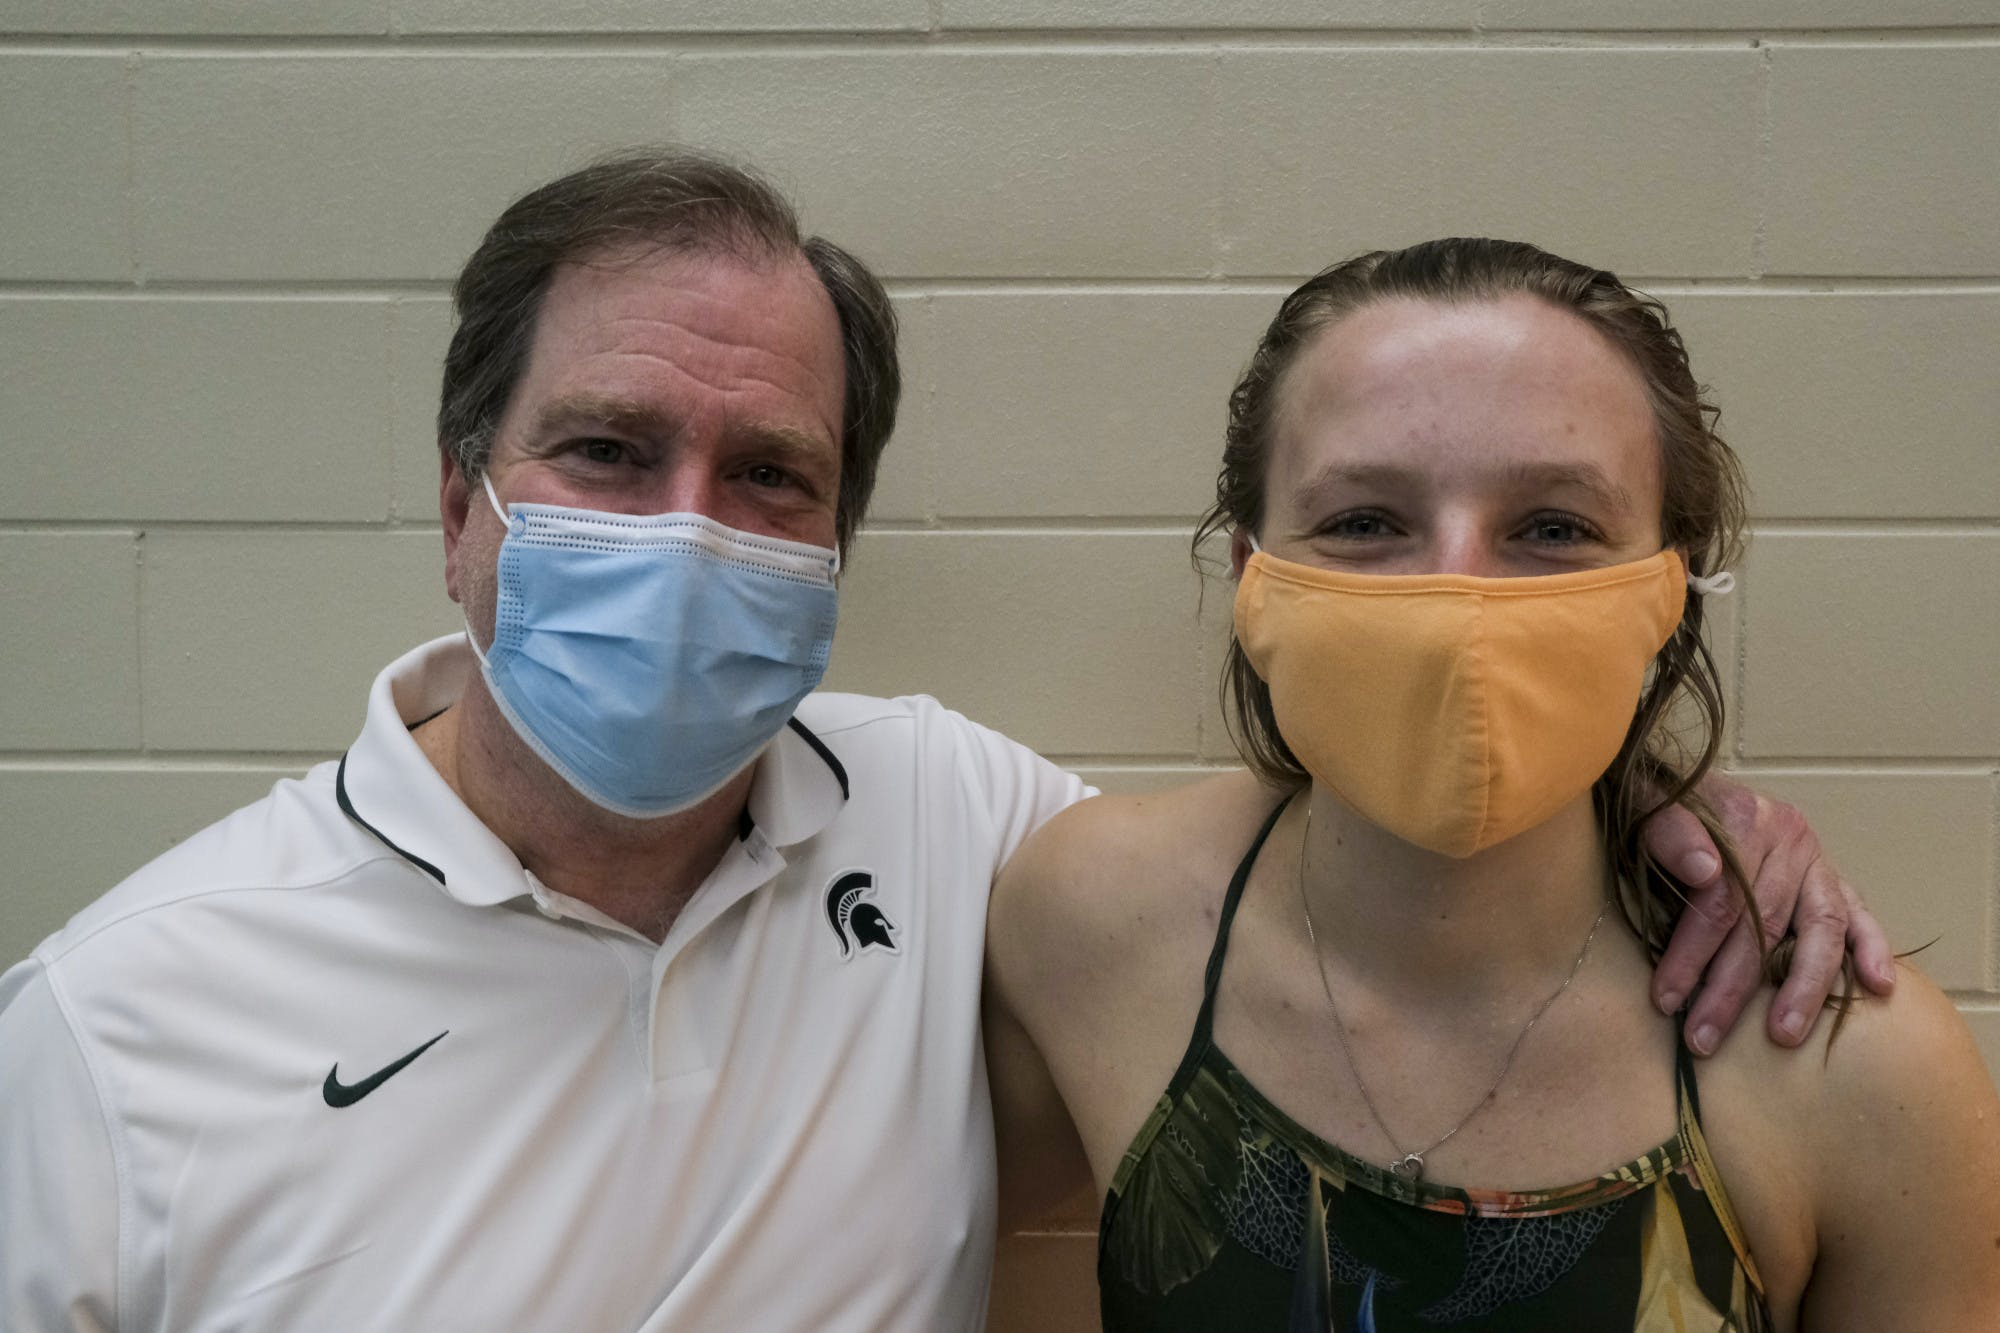 Two people wearing face masks pose for a photo together with their arms around each other. One wears a polo shirt with the Michigan State Spartan logo on it and the other wears a swimsuit.